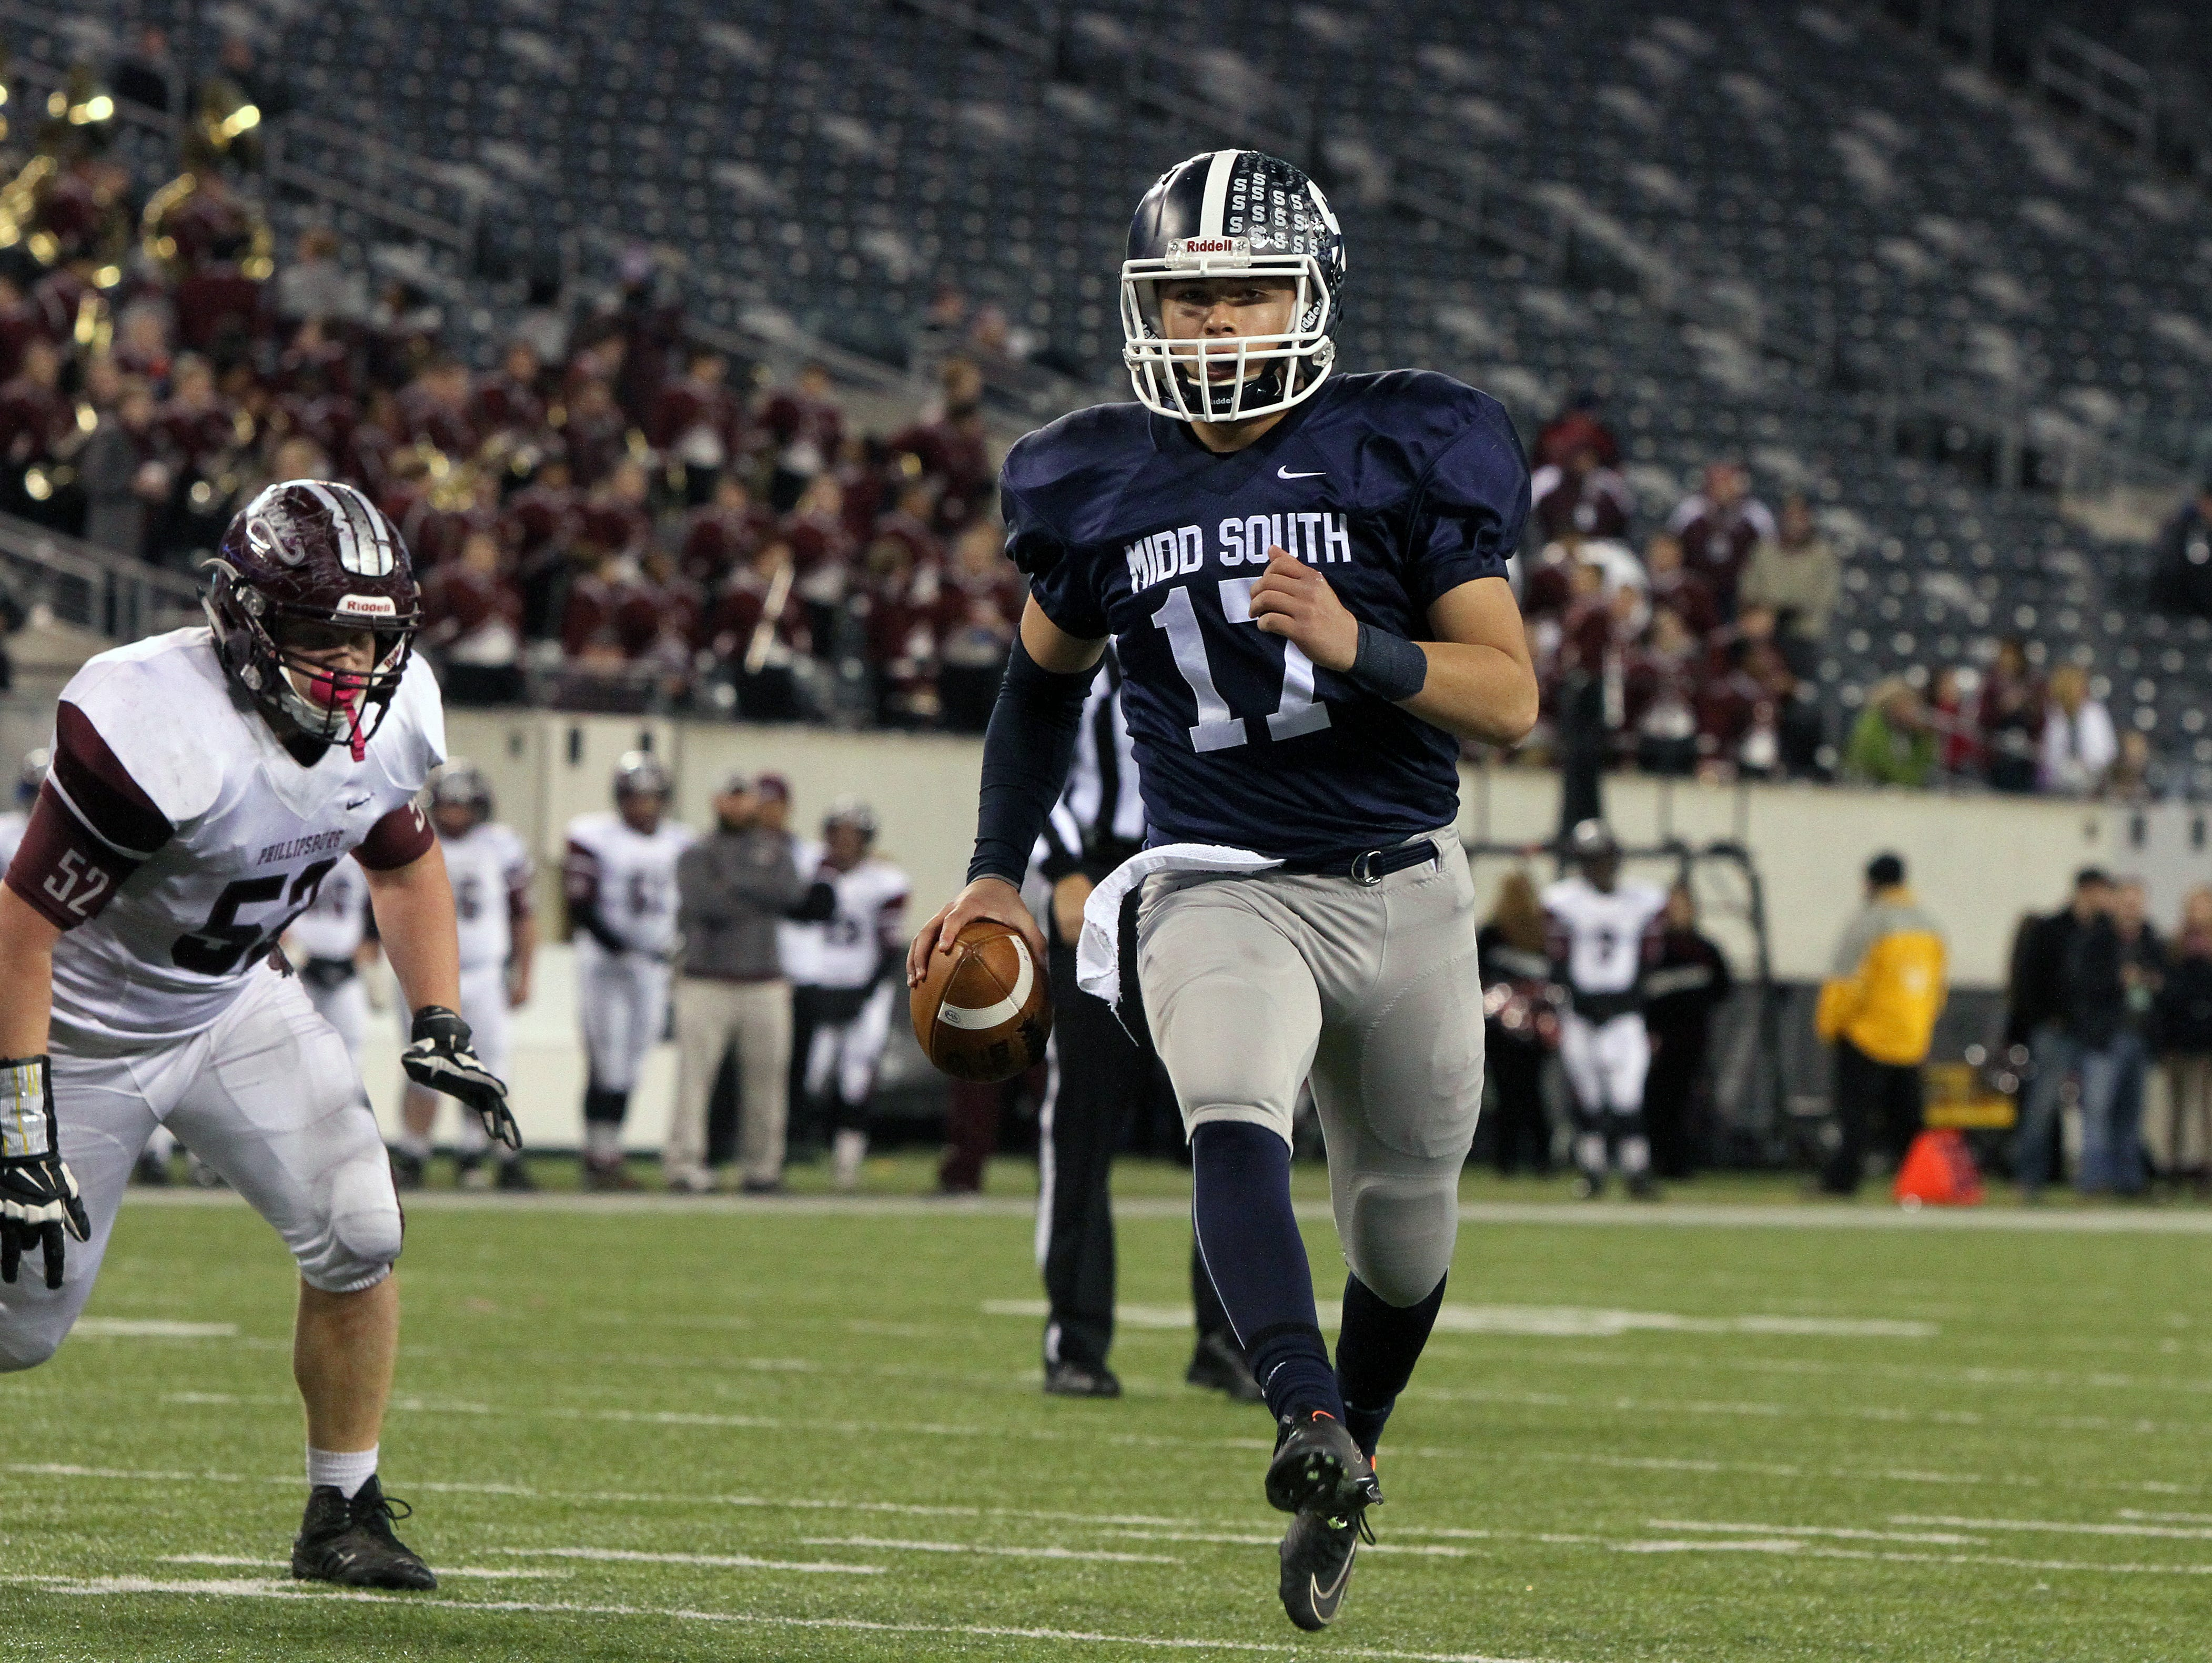 Middletown South's #17 Matt Mosquera runs the ball in for a touchdown during the second half against Phillipsburg High School during the North 2 Group IV game of the 2015 NJSIAA/MetLife Stadium High School Football Championships at MetLife Stadium in East Rutherford, NJ Saturday December 5, 2015.